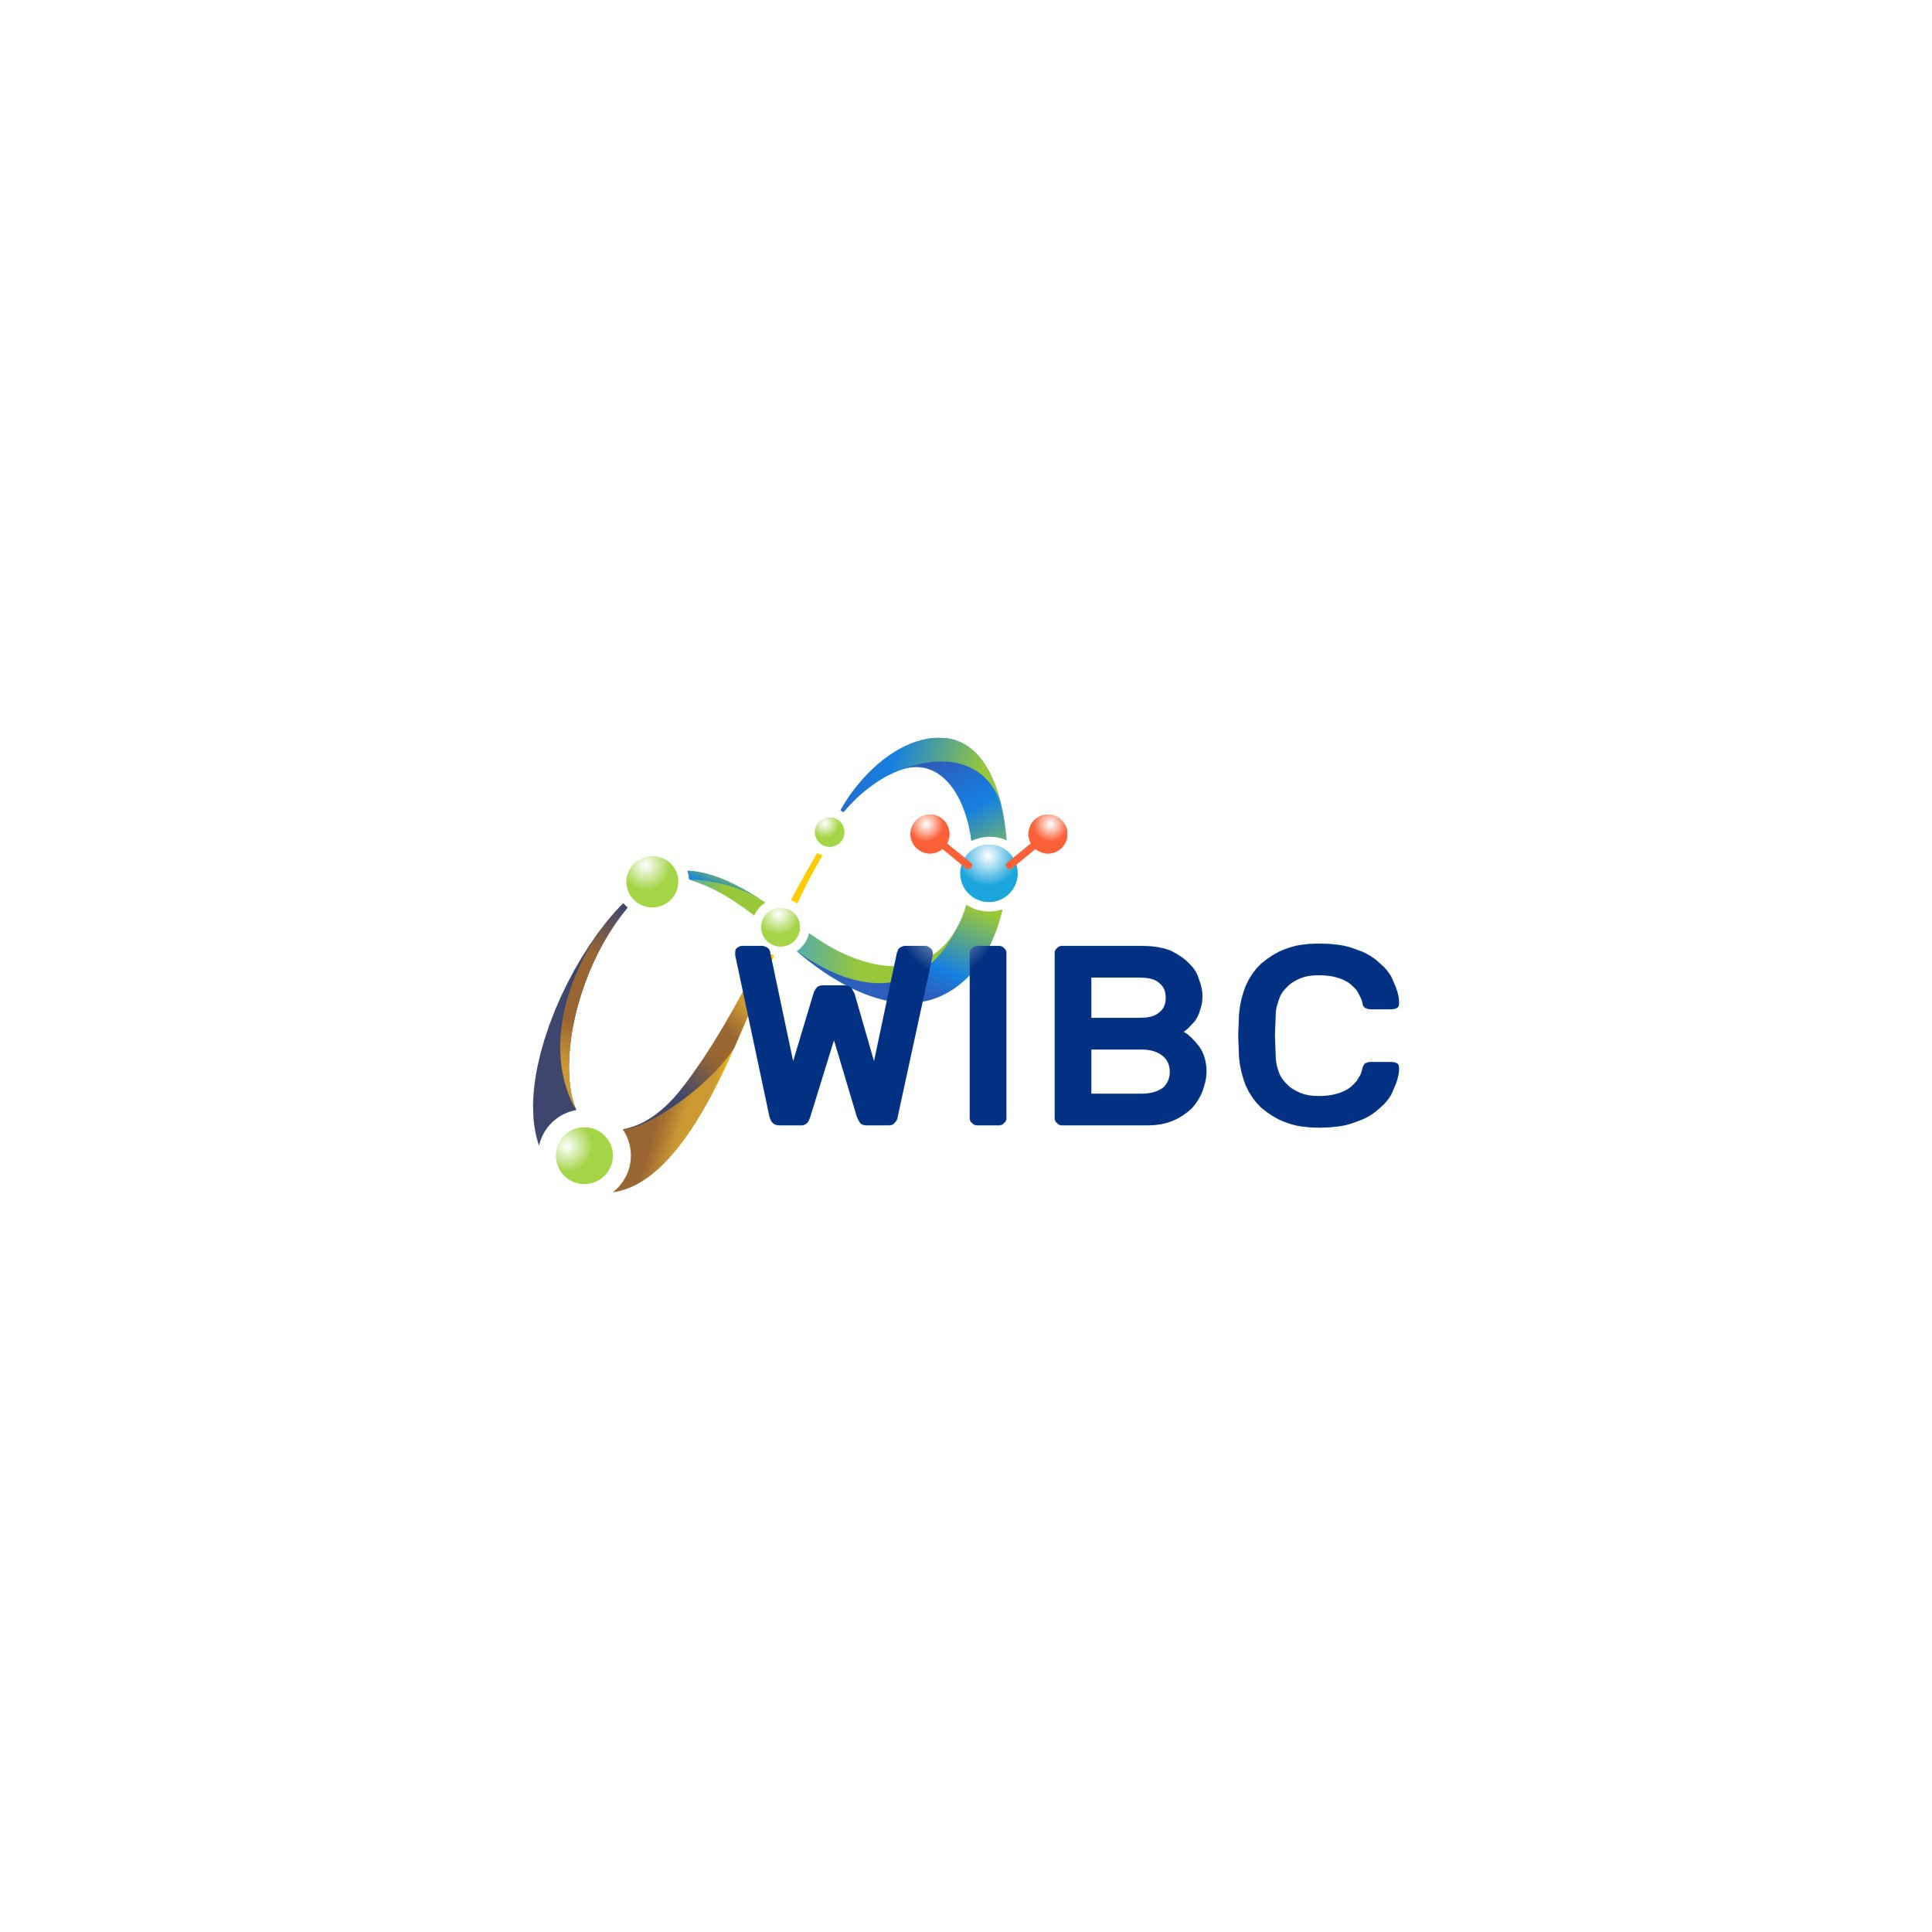 Create a catching logo for WIBC, LLC - a up and coming consulting firm